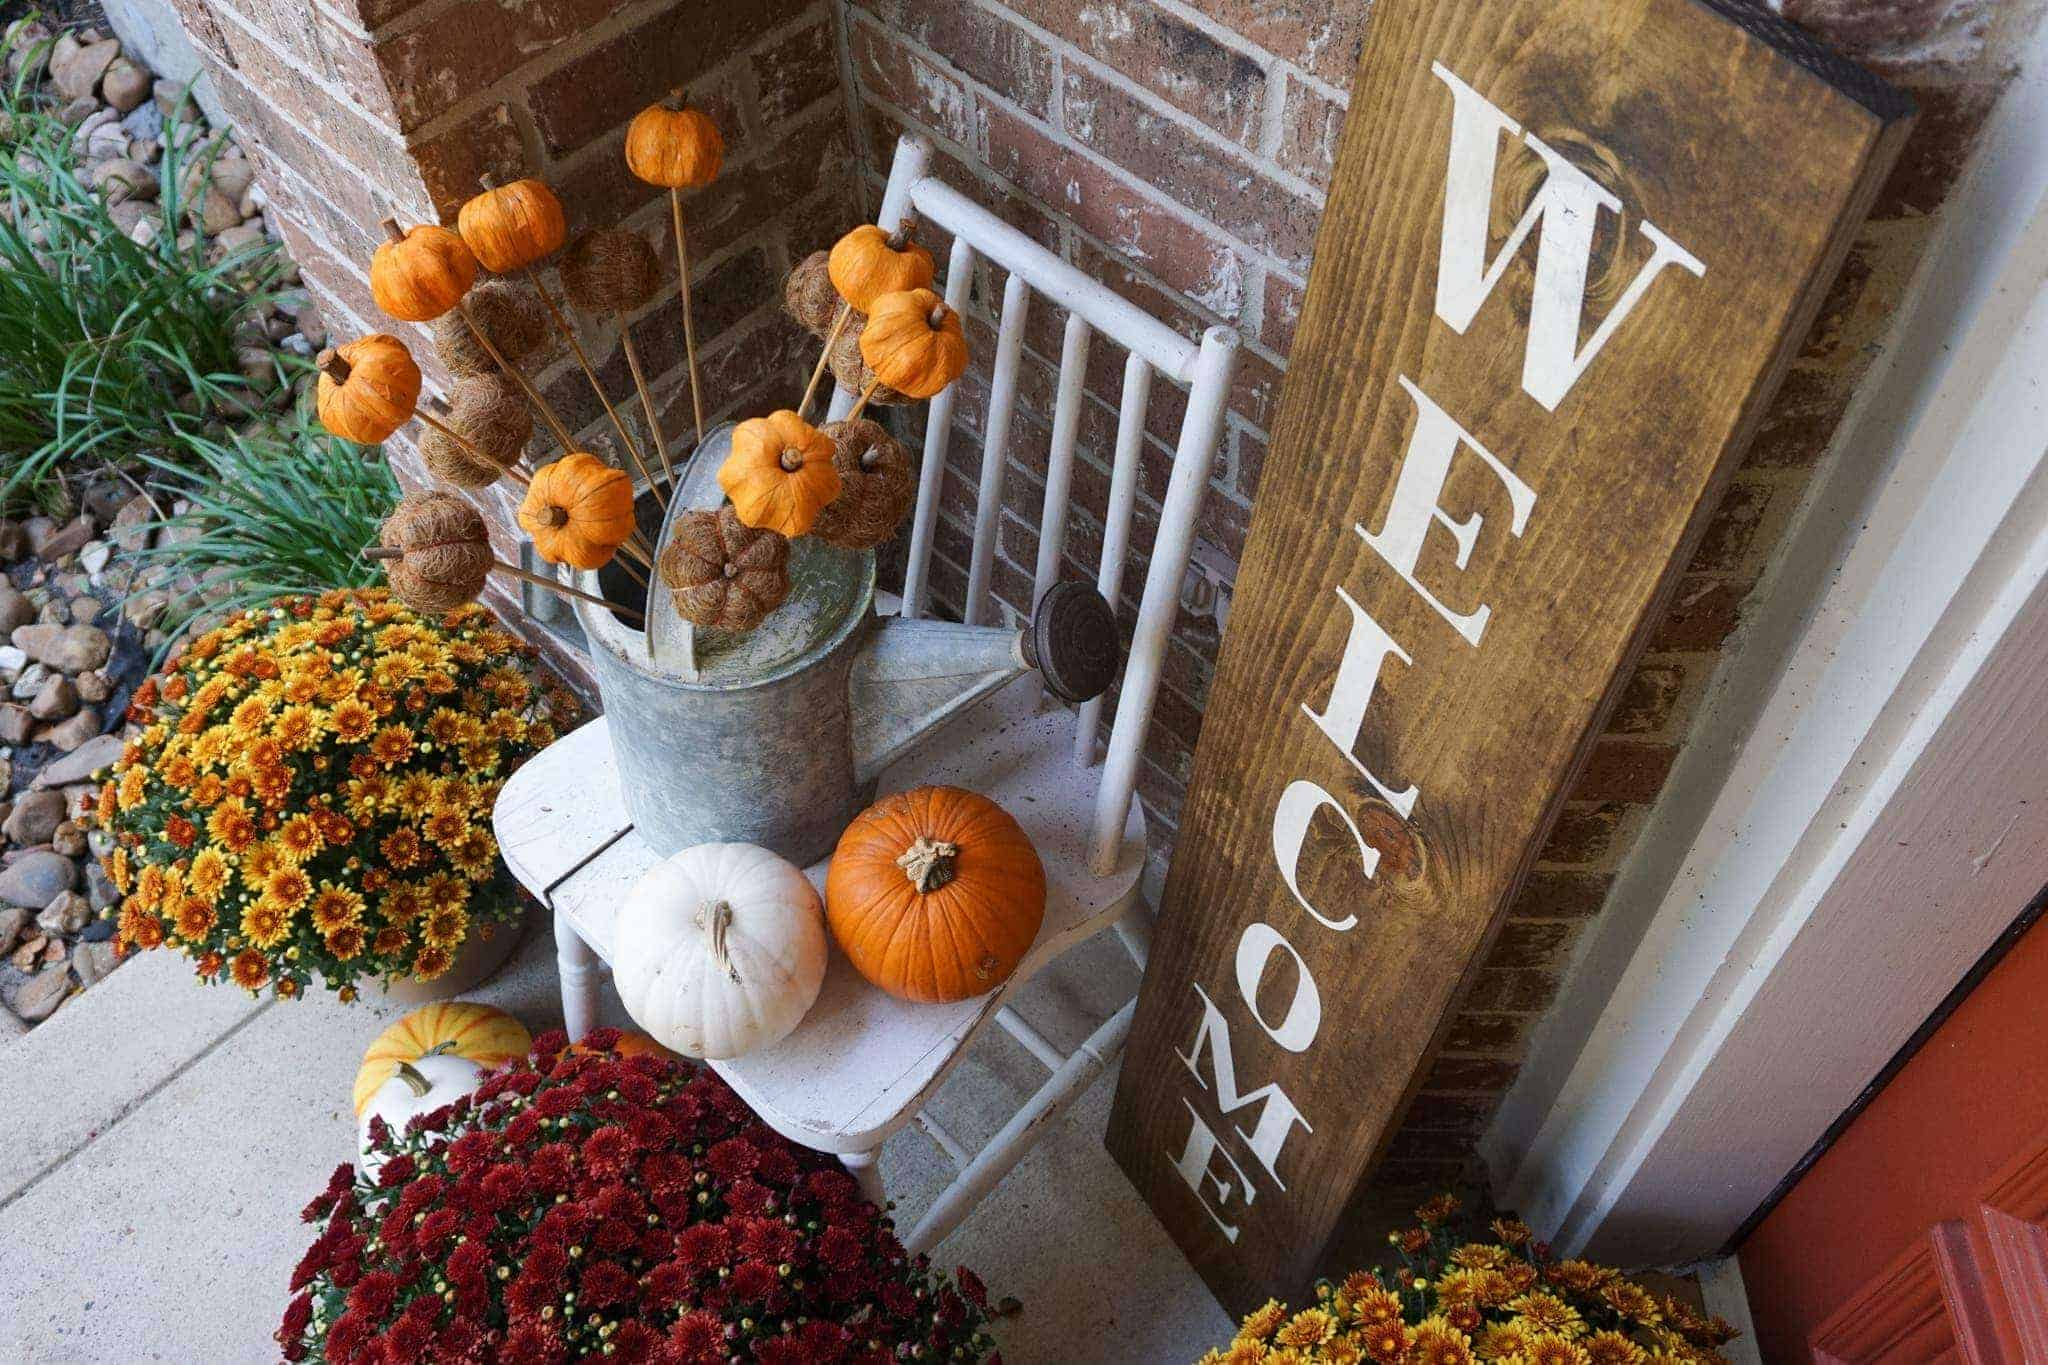 Outdoor fall decor for the front porch.